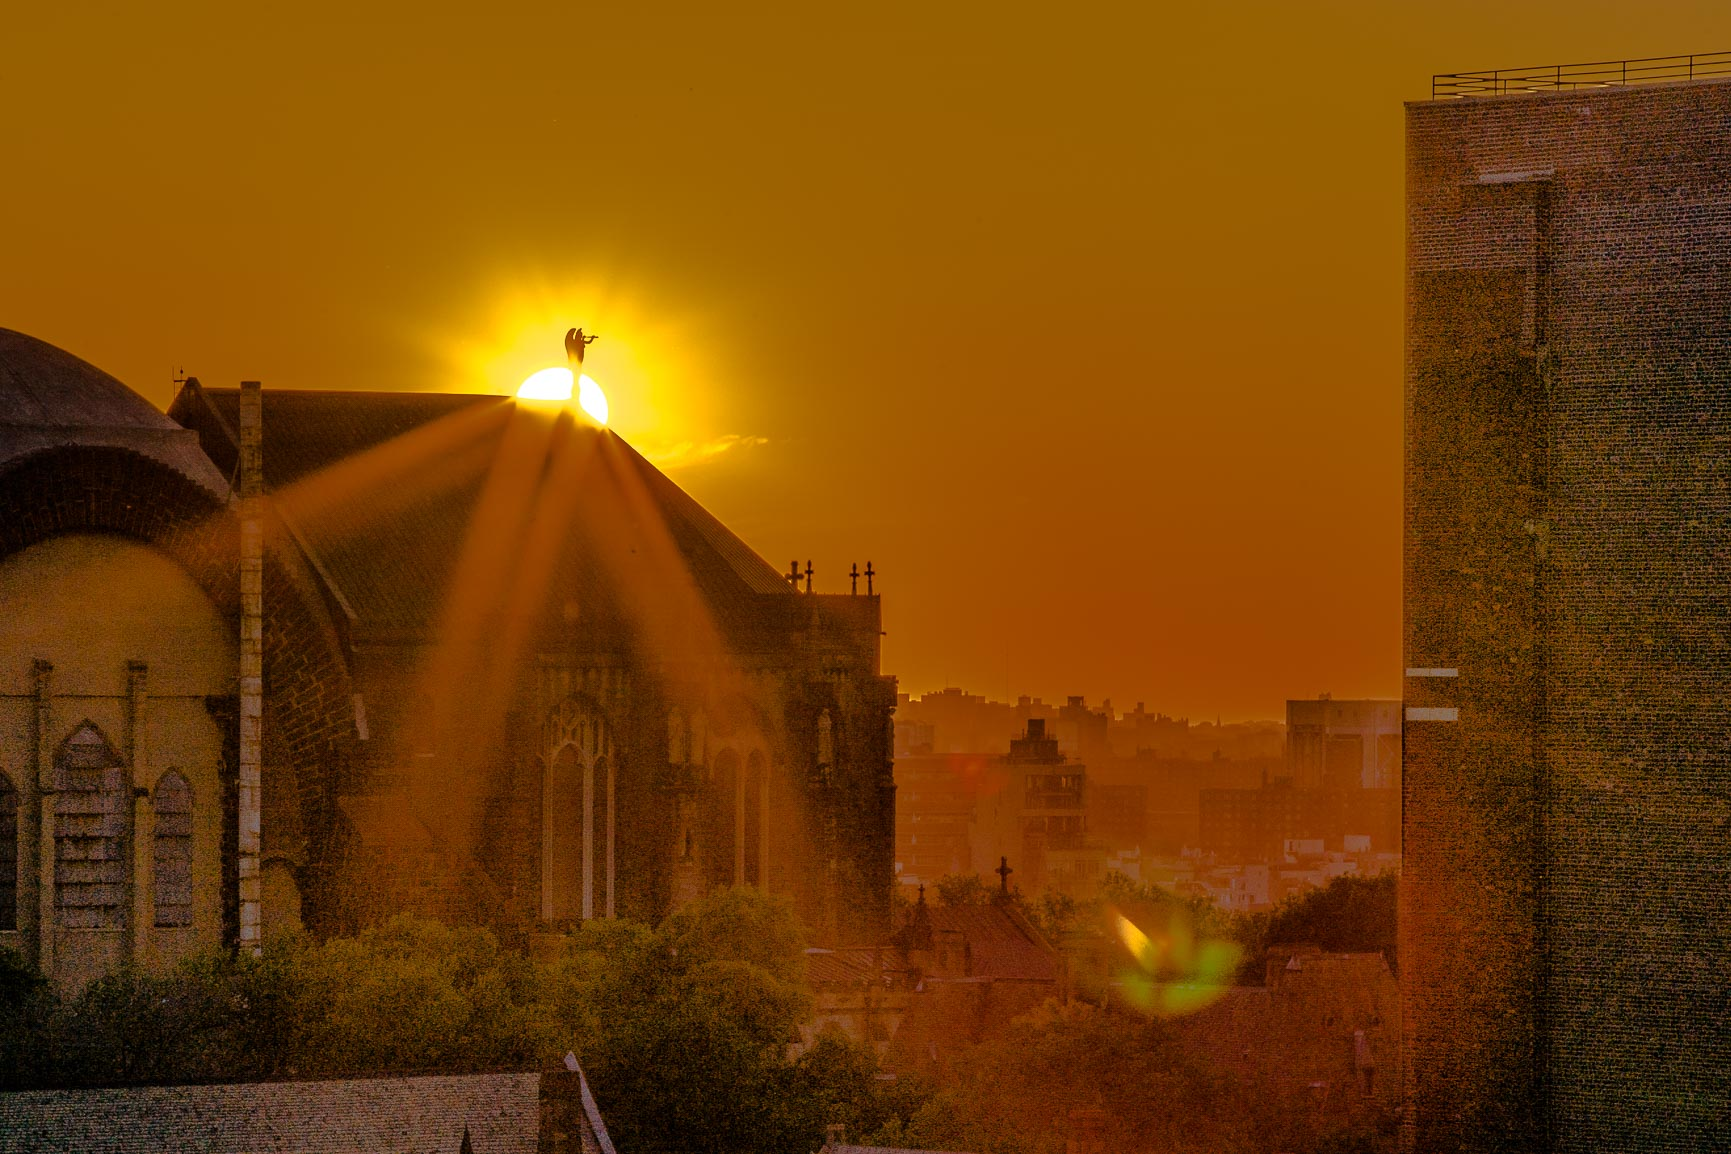 Cathedralhenge with Diffraction